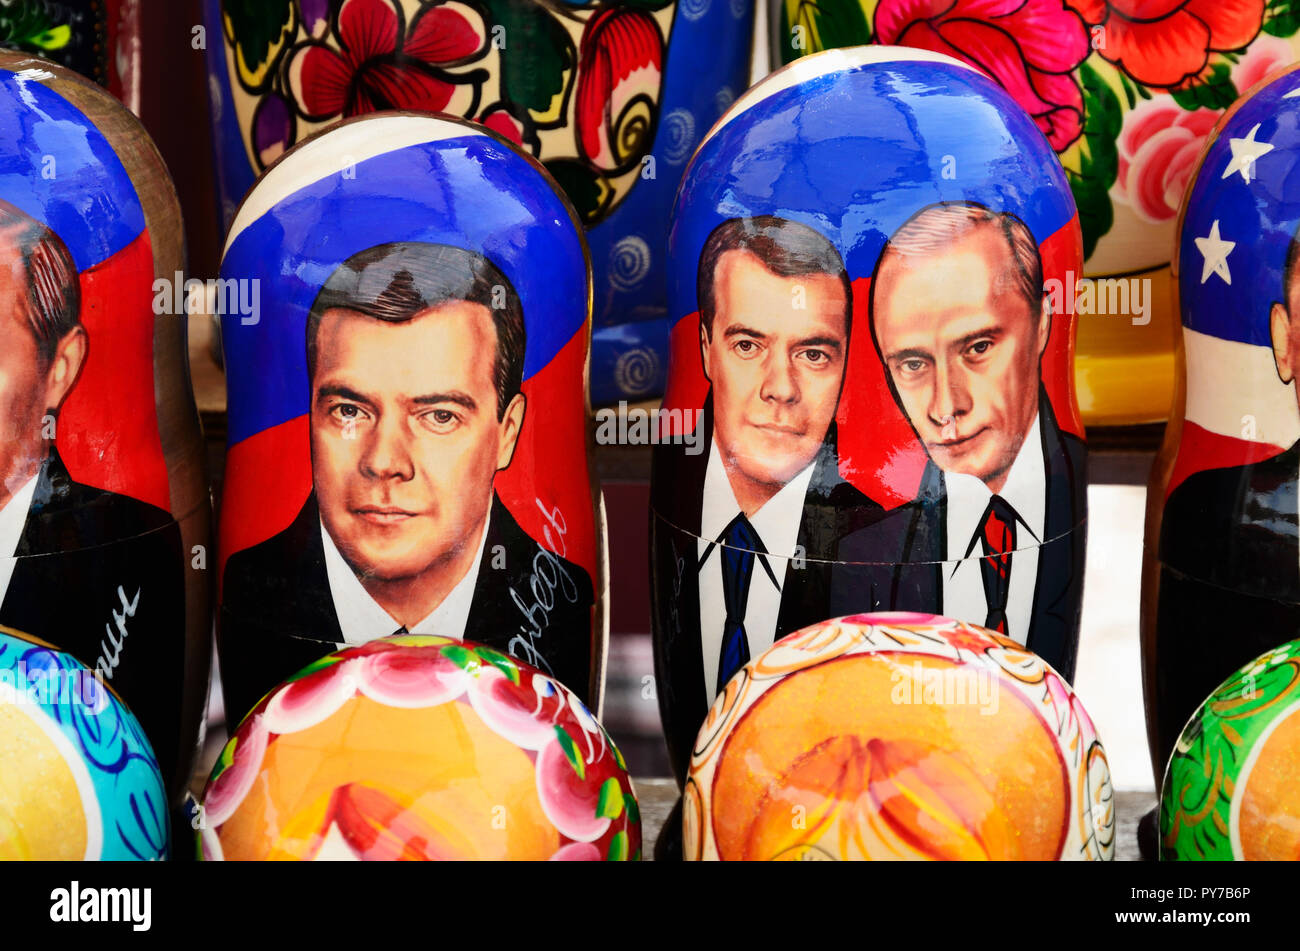 Matryoshka doll with the faces of the heads of state. Soviet memorabilia in a street market. Vyborg, Vyborgsky District, Leningrad Oblast, Russia, Rus - Stock Image